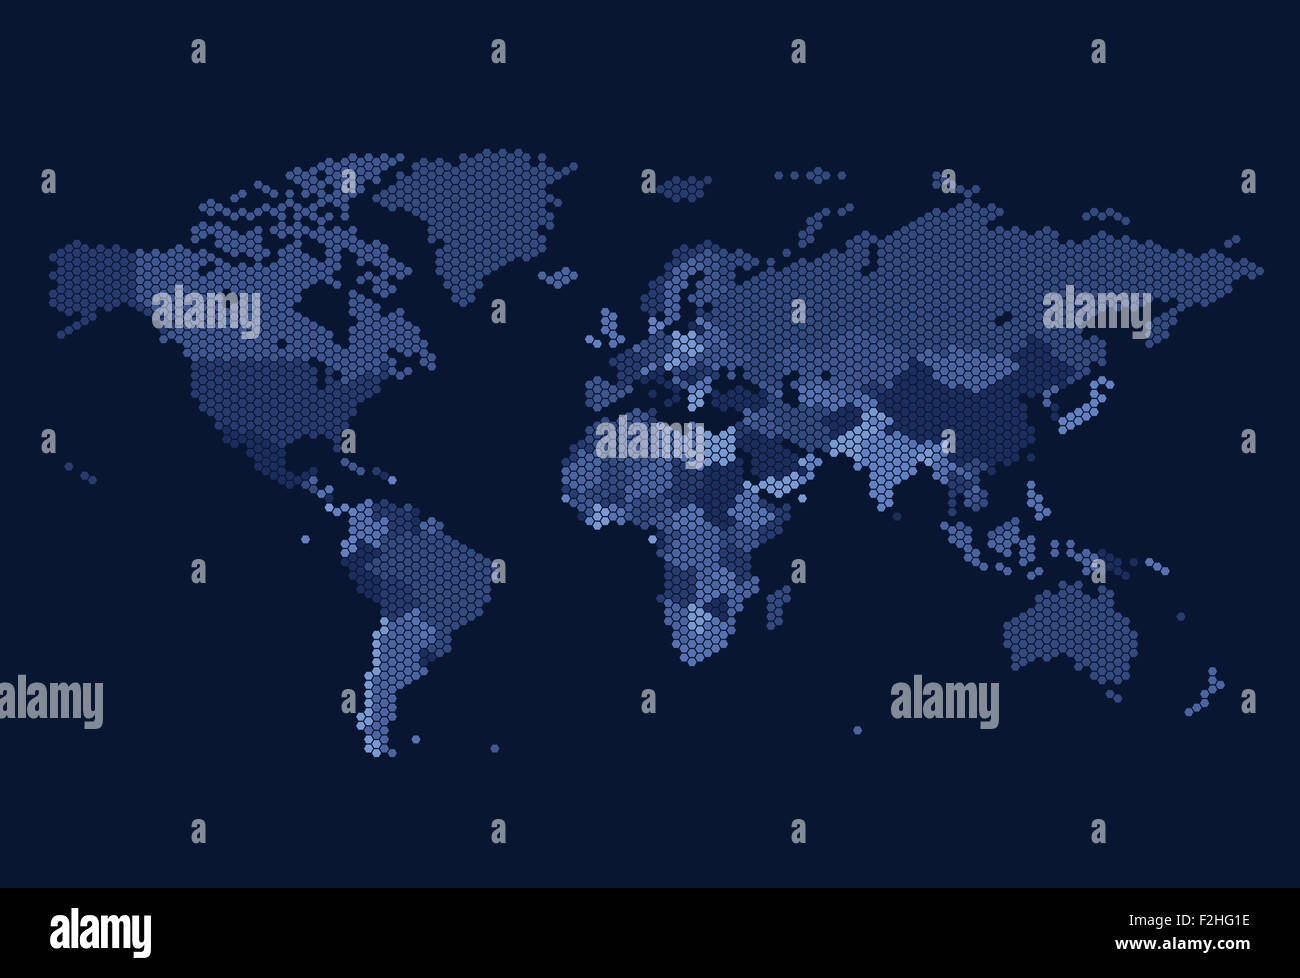 Grid world map on blue stock photos grid world map on blue stock dotted world map of hexagonal dots on dark background stock image gumiabroncs Gallery